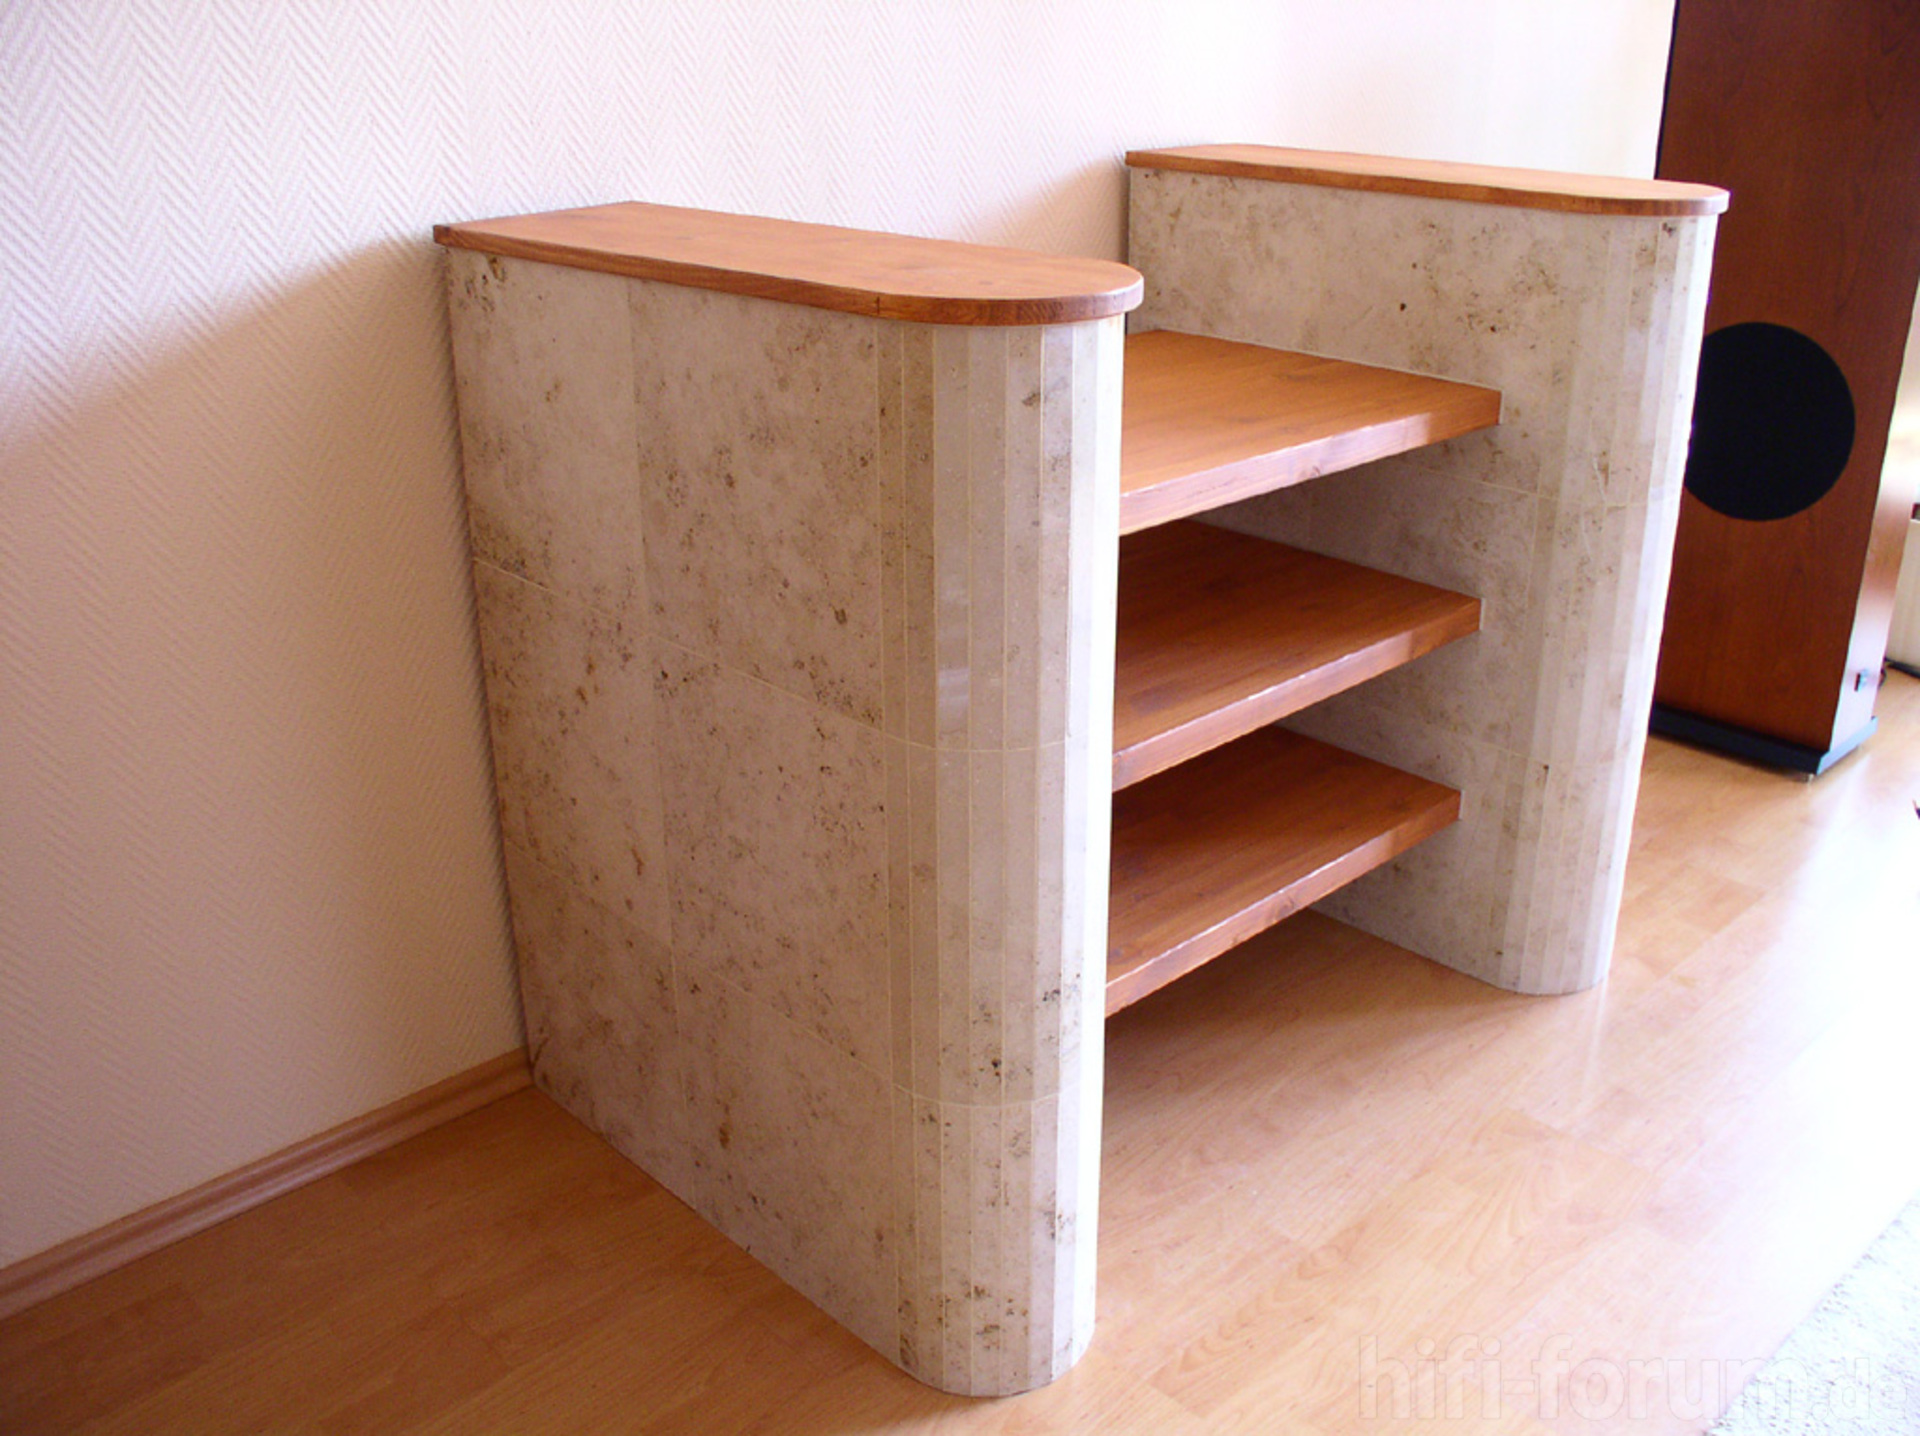 Hifi rack selbstbau  hifi-rack | do it yourself, hifirack, rack, selbstbau | hifi-forum ...